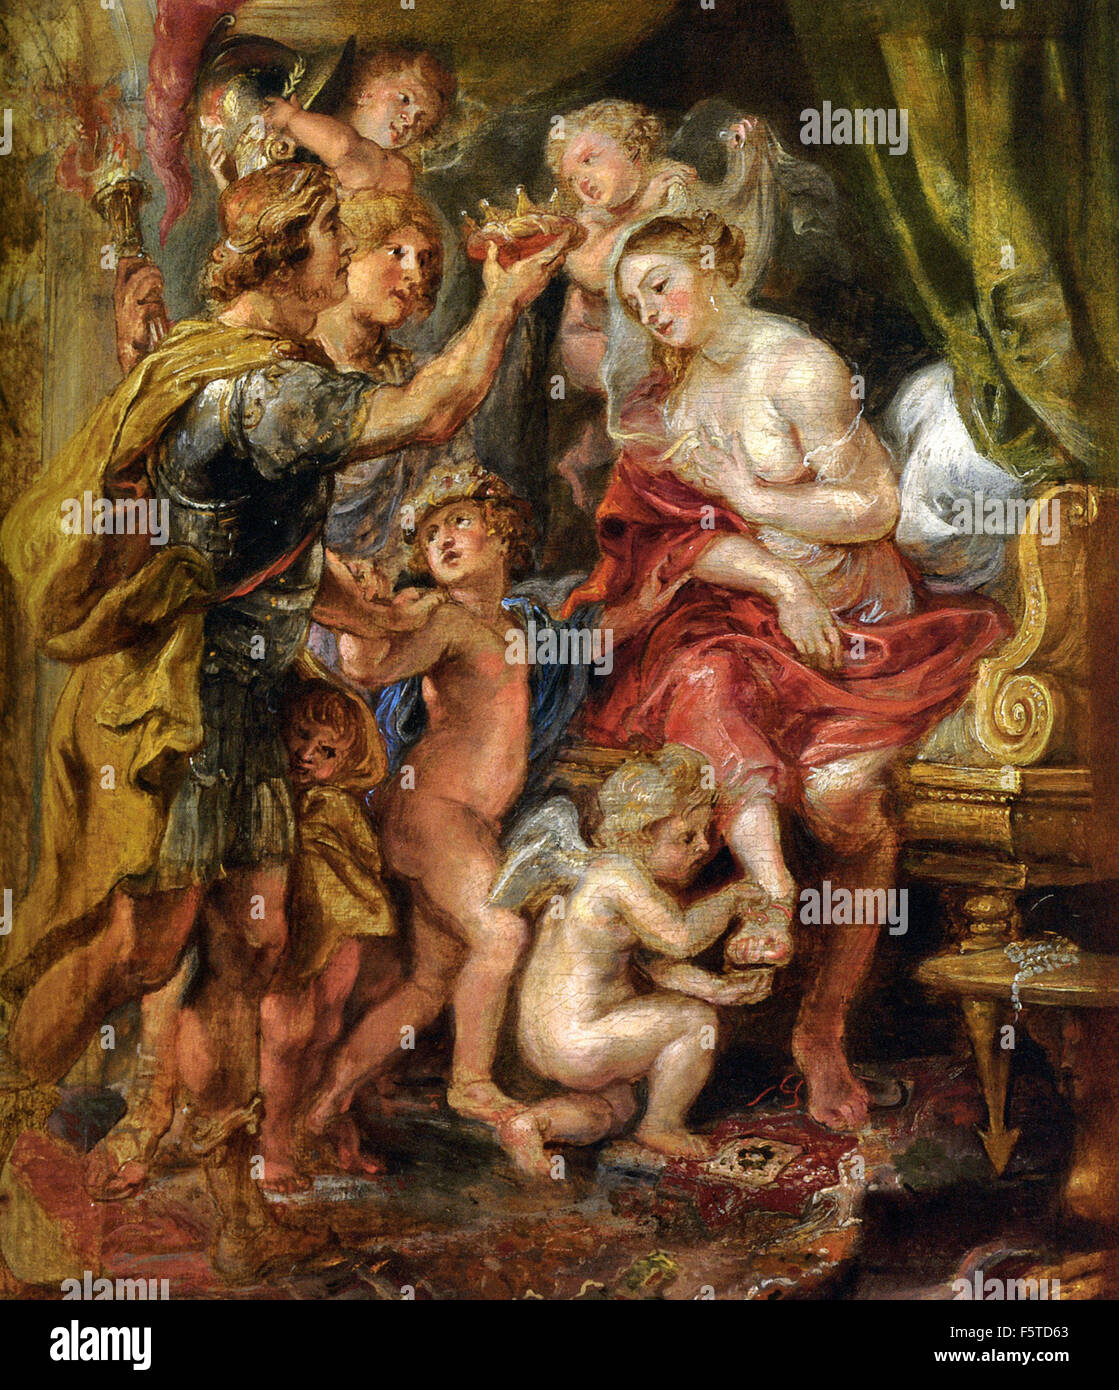 Peter Paul Rubens - Alexander and Roxana - Stock Image